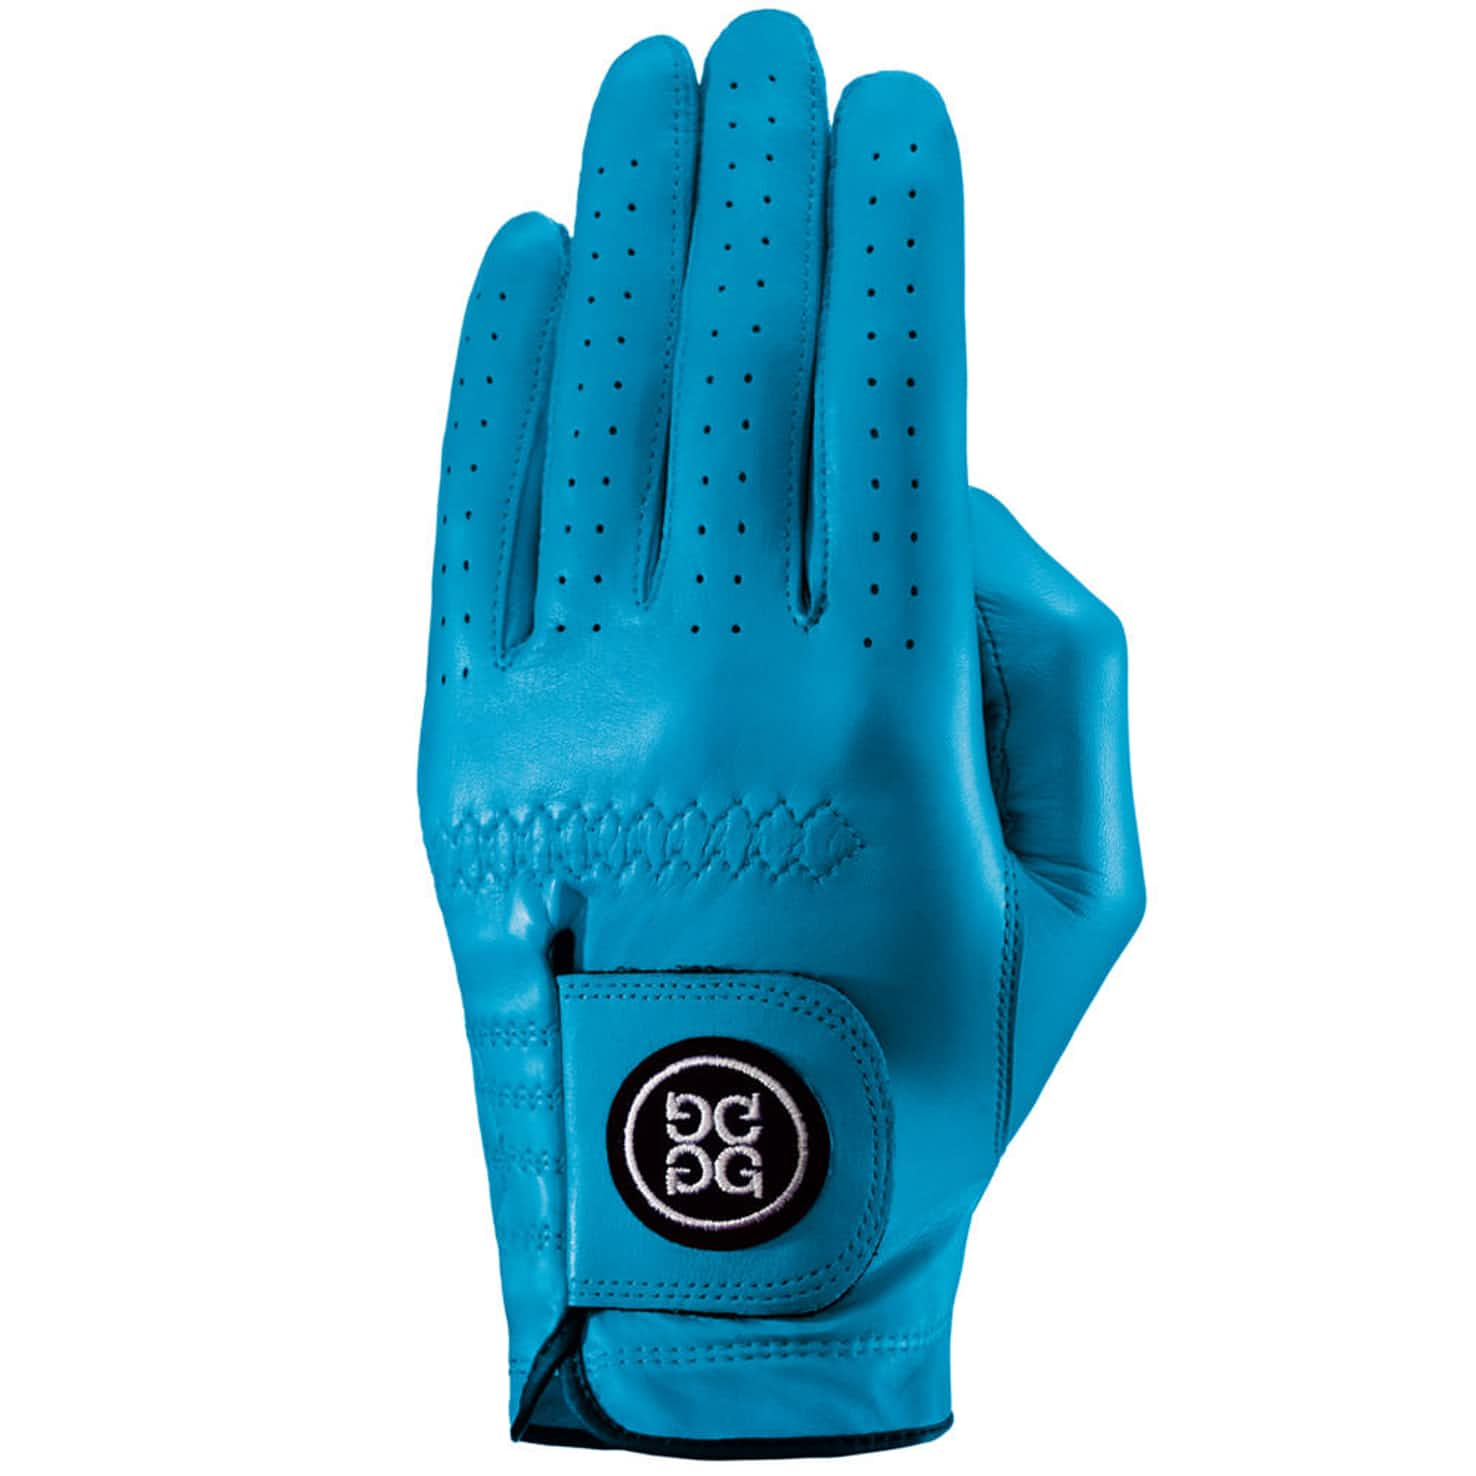 Womens Left Glove Pacific - 2019